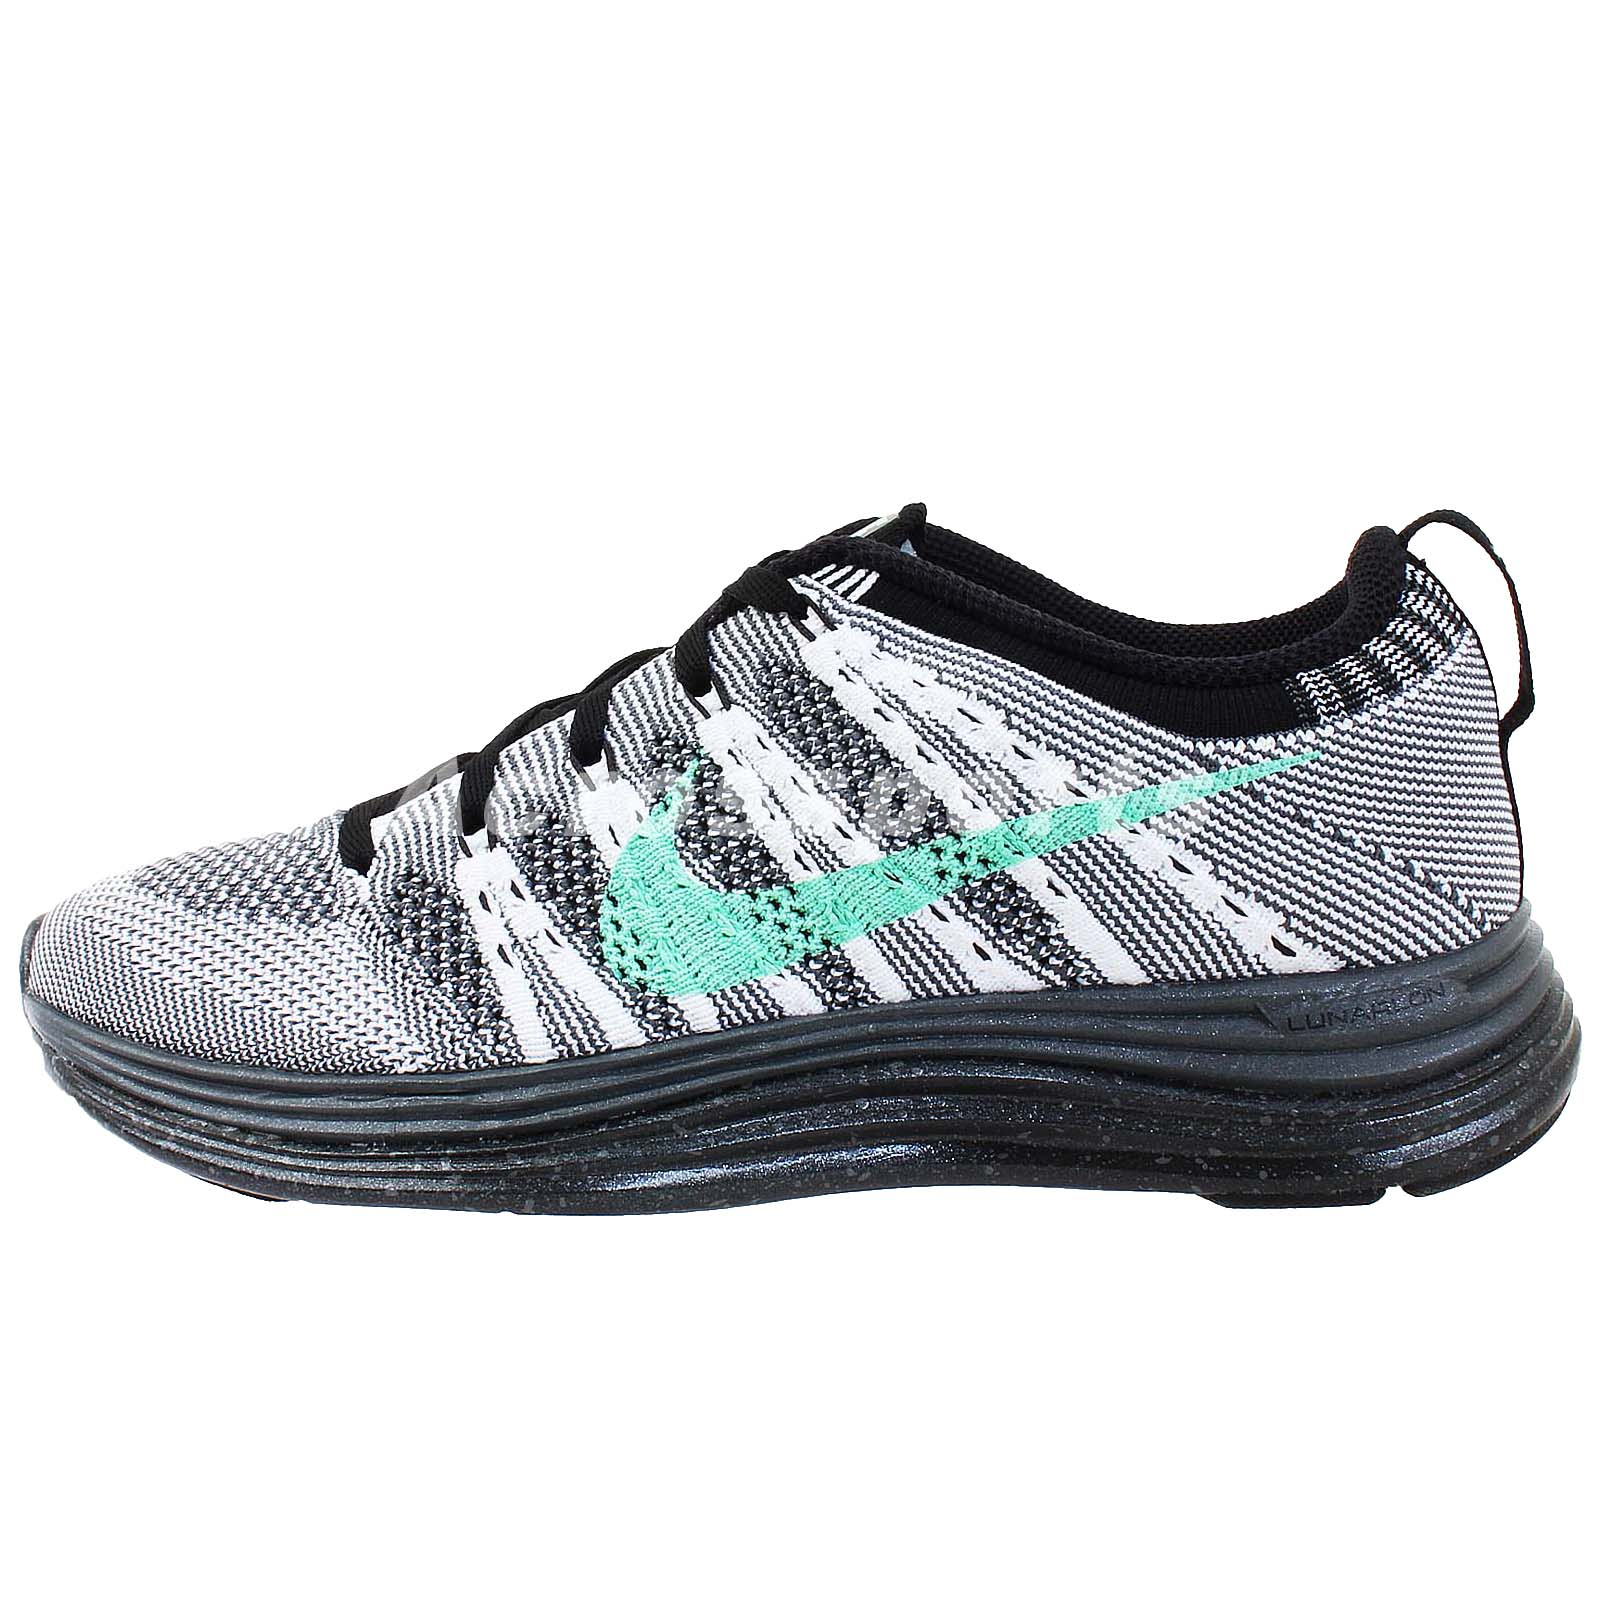 Model Saucony Womens Omni 12 Running Shoe Saucony Lends Structure And Support For The Moderate To Severe Pronator In This Twelth Edition Of The Omni Running Shoe Womens New Balance WR 780 Cushioned Running Shoe Maintain Your